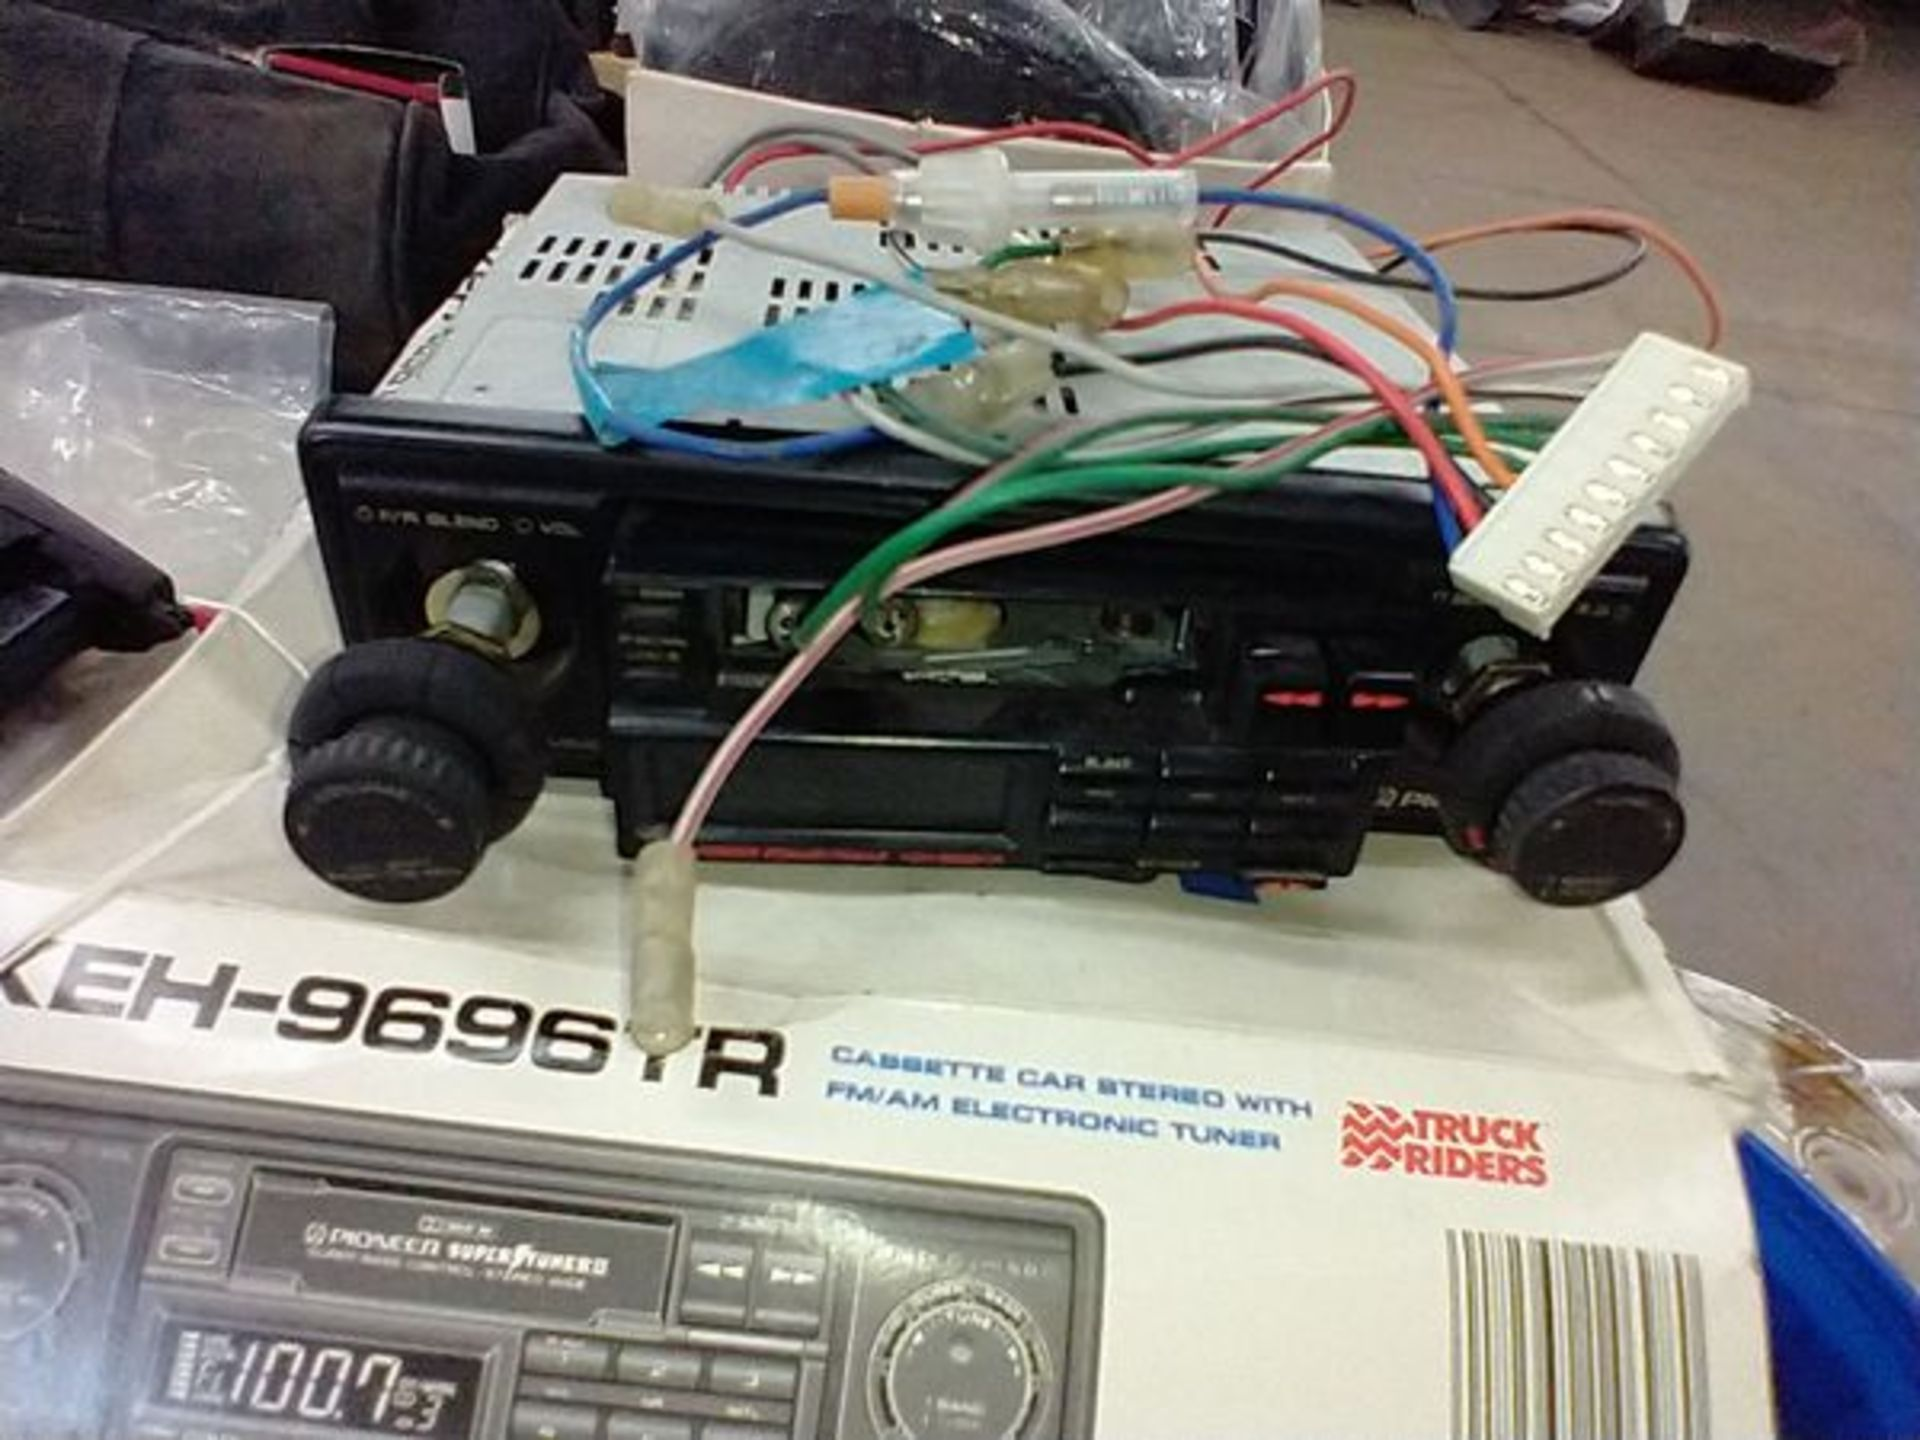 CAR SETEROS - PIONEEK KEH-9696TR AND JVC KS-RT50 WITH BOX OF PARTS - Image 2 of 5